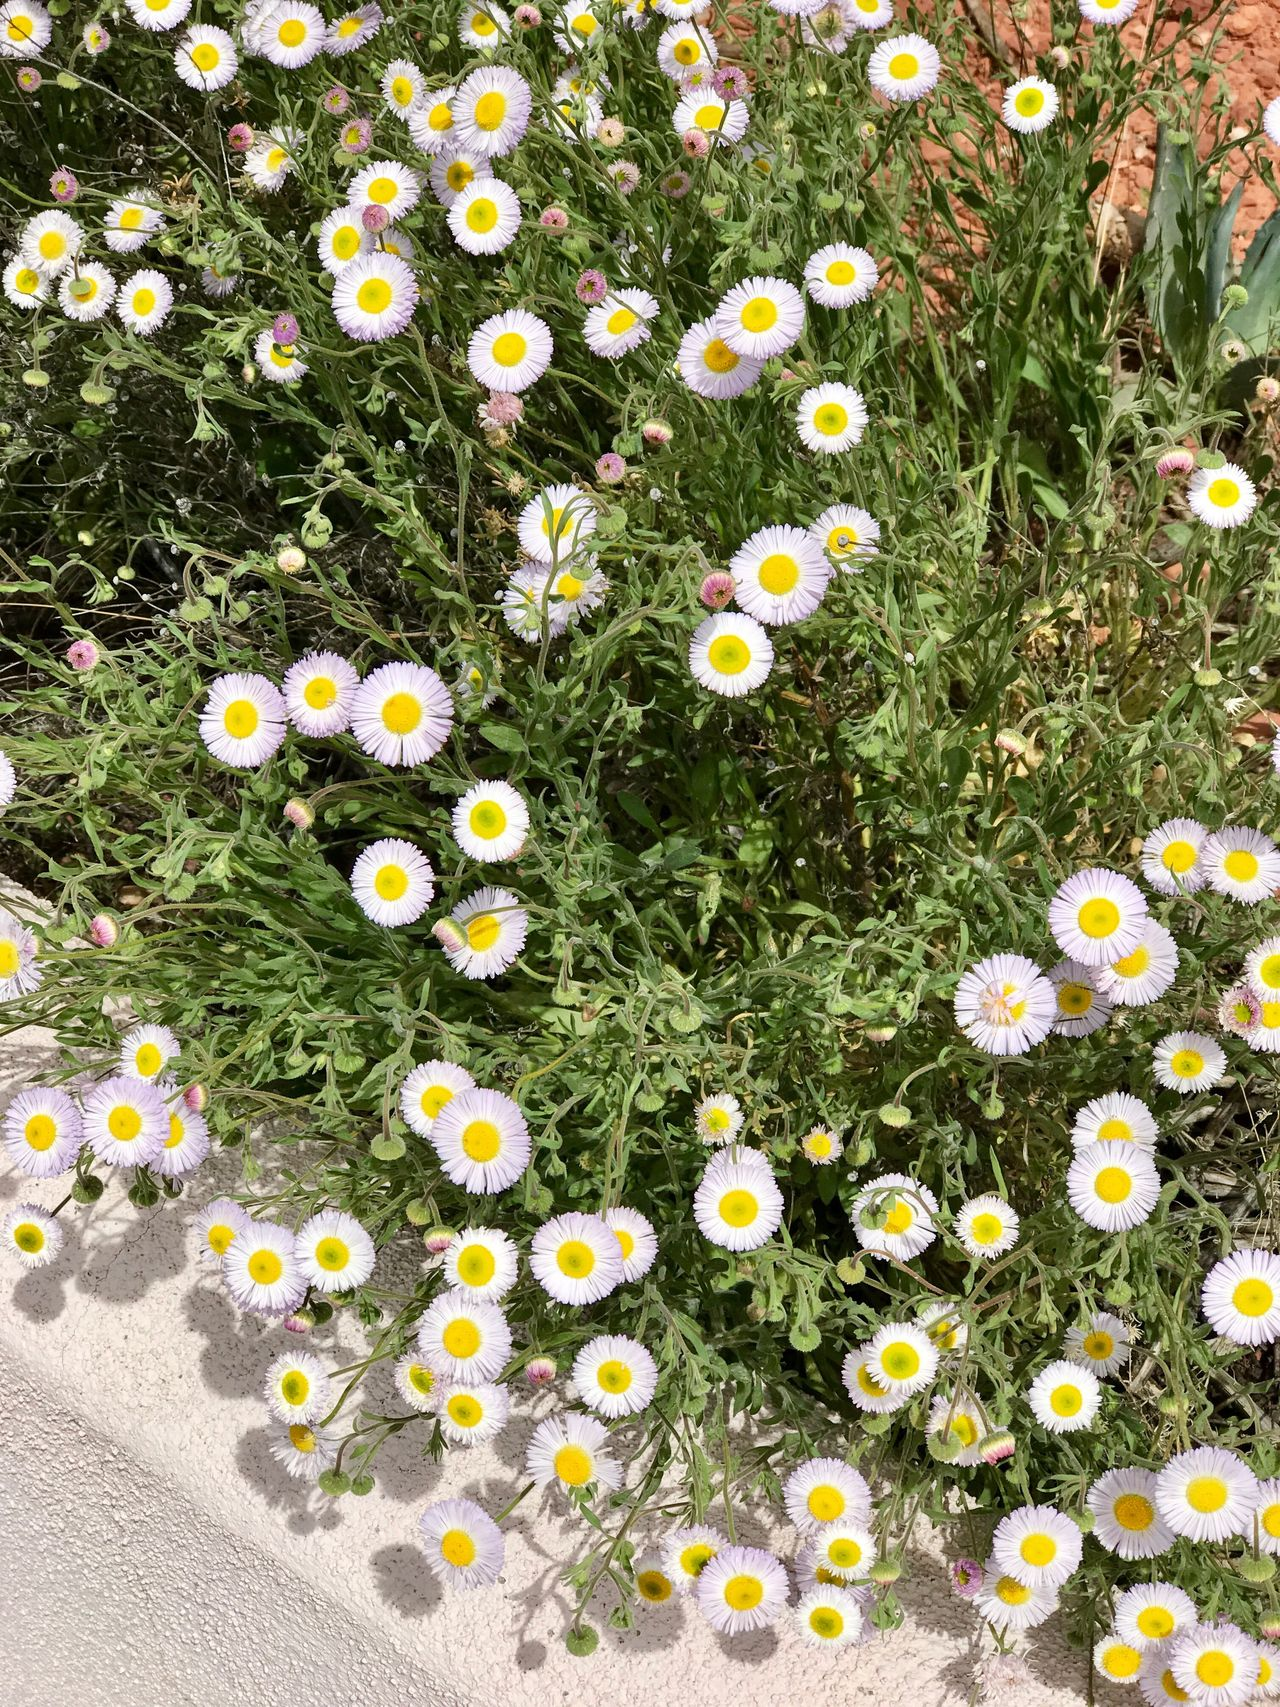 White flowers Flower Yellow Nature Beauty In Nature Growth Plant High Angle View Petal Springtime Green Color Fragility No People Outdoors Flower Head Day Freshness Grass